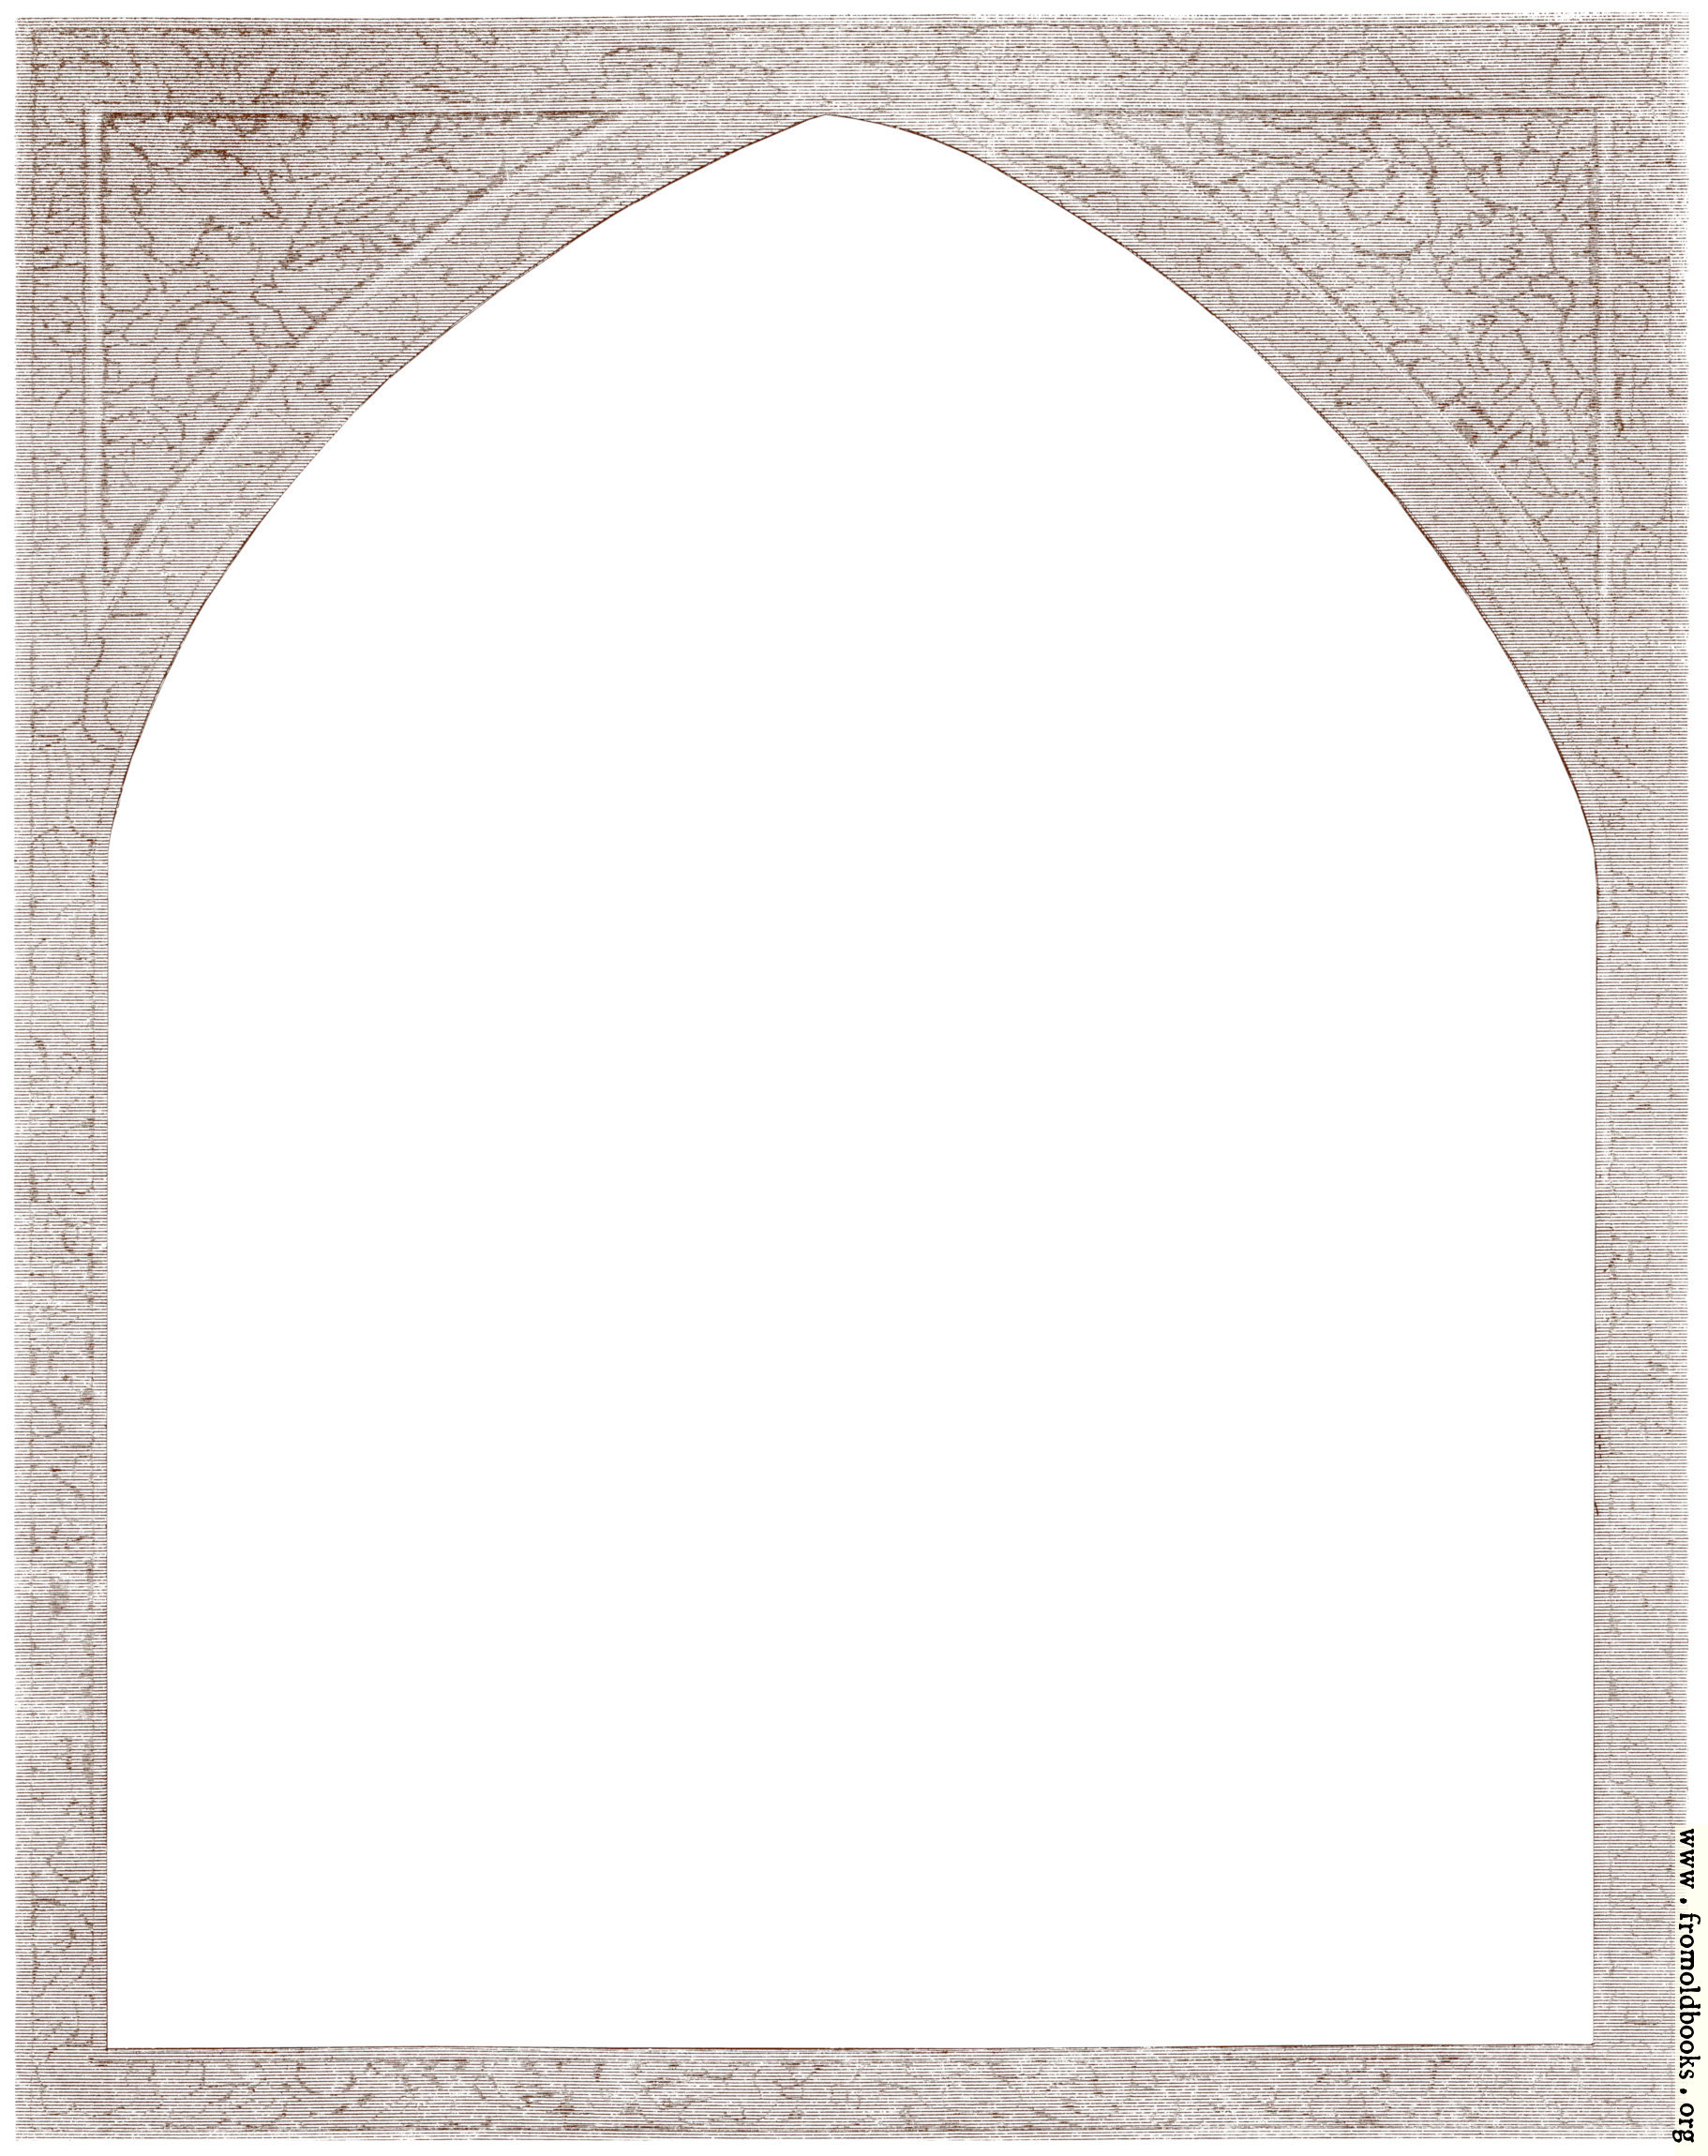 [Picture: Arched textured border from Paul and Virginia in the Forest]